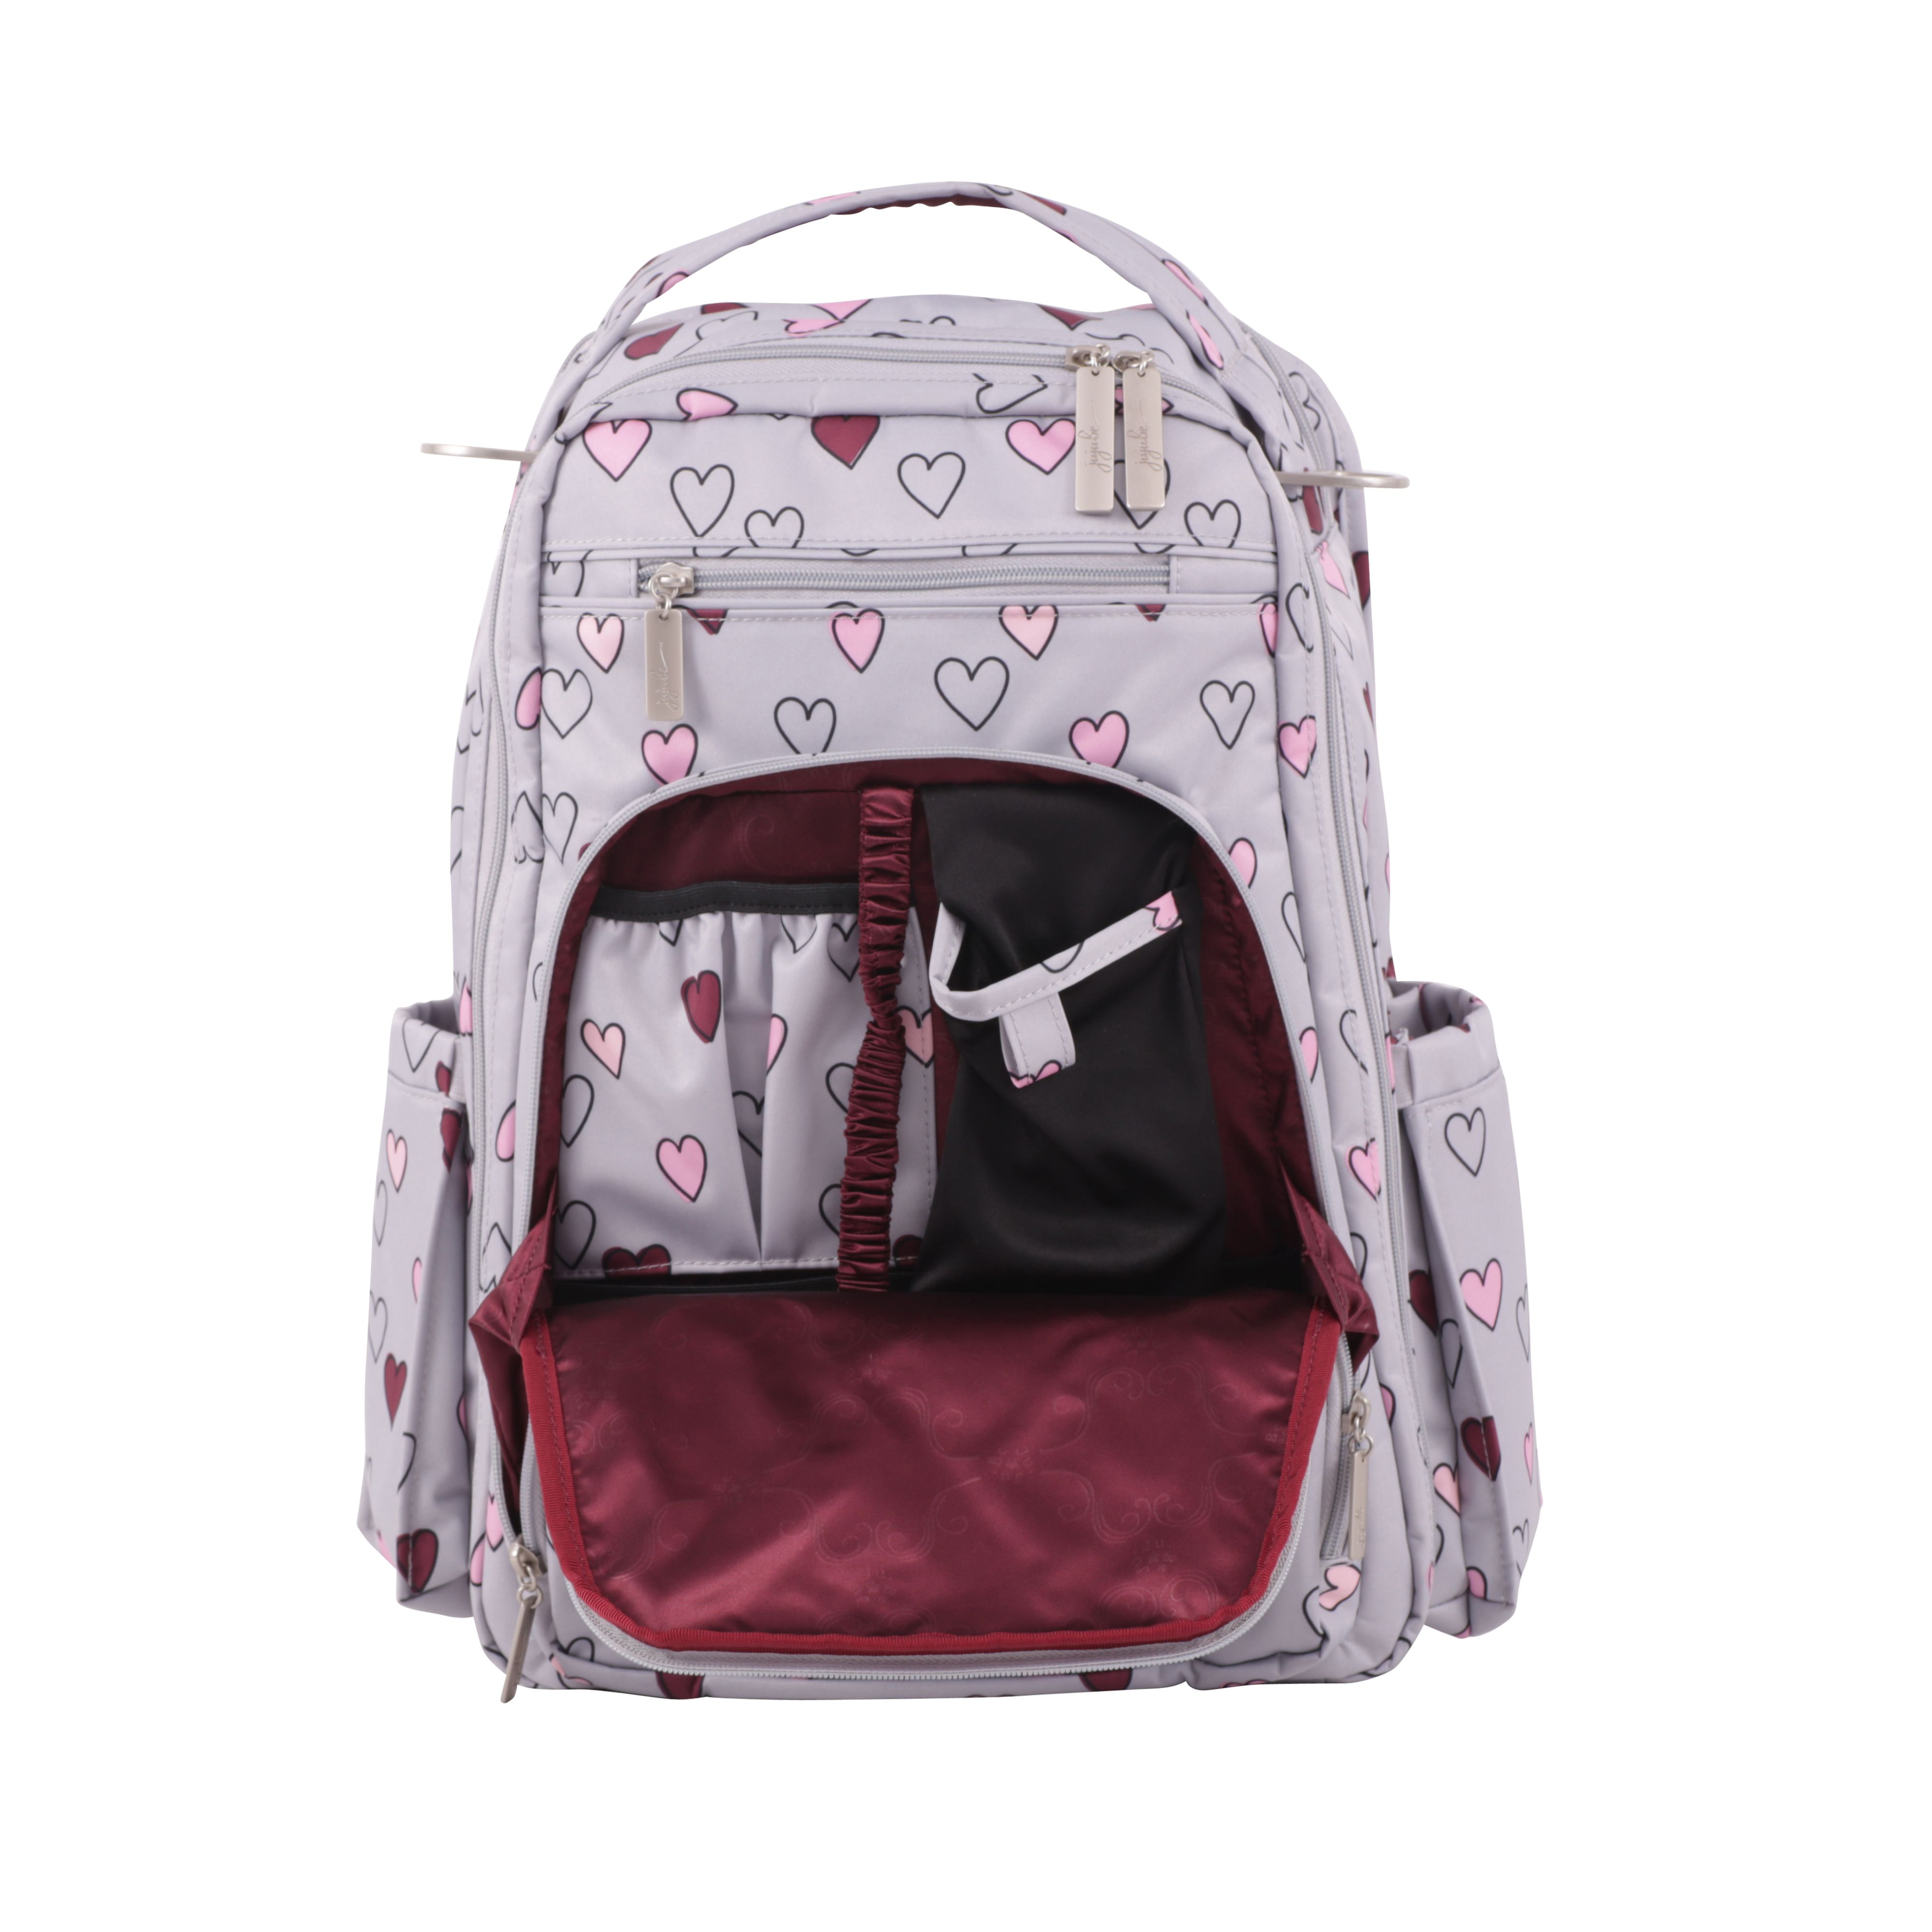 37981823ebe5 Ju-Ju-Be Classic  Be Right Back in Happy heart! €144.95  £122.00. Machine  washable bag to look good while being a great mom.